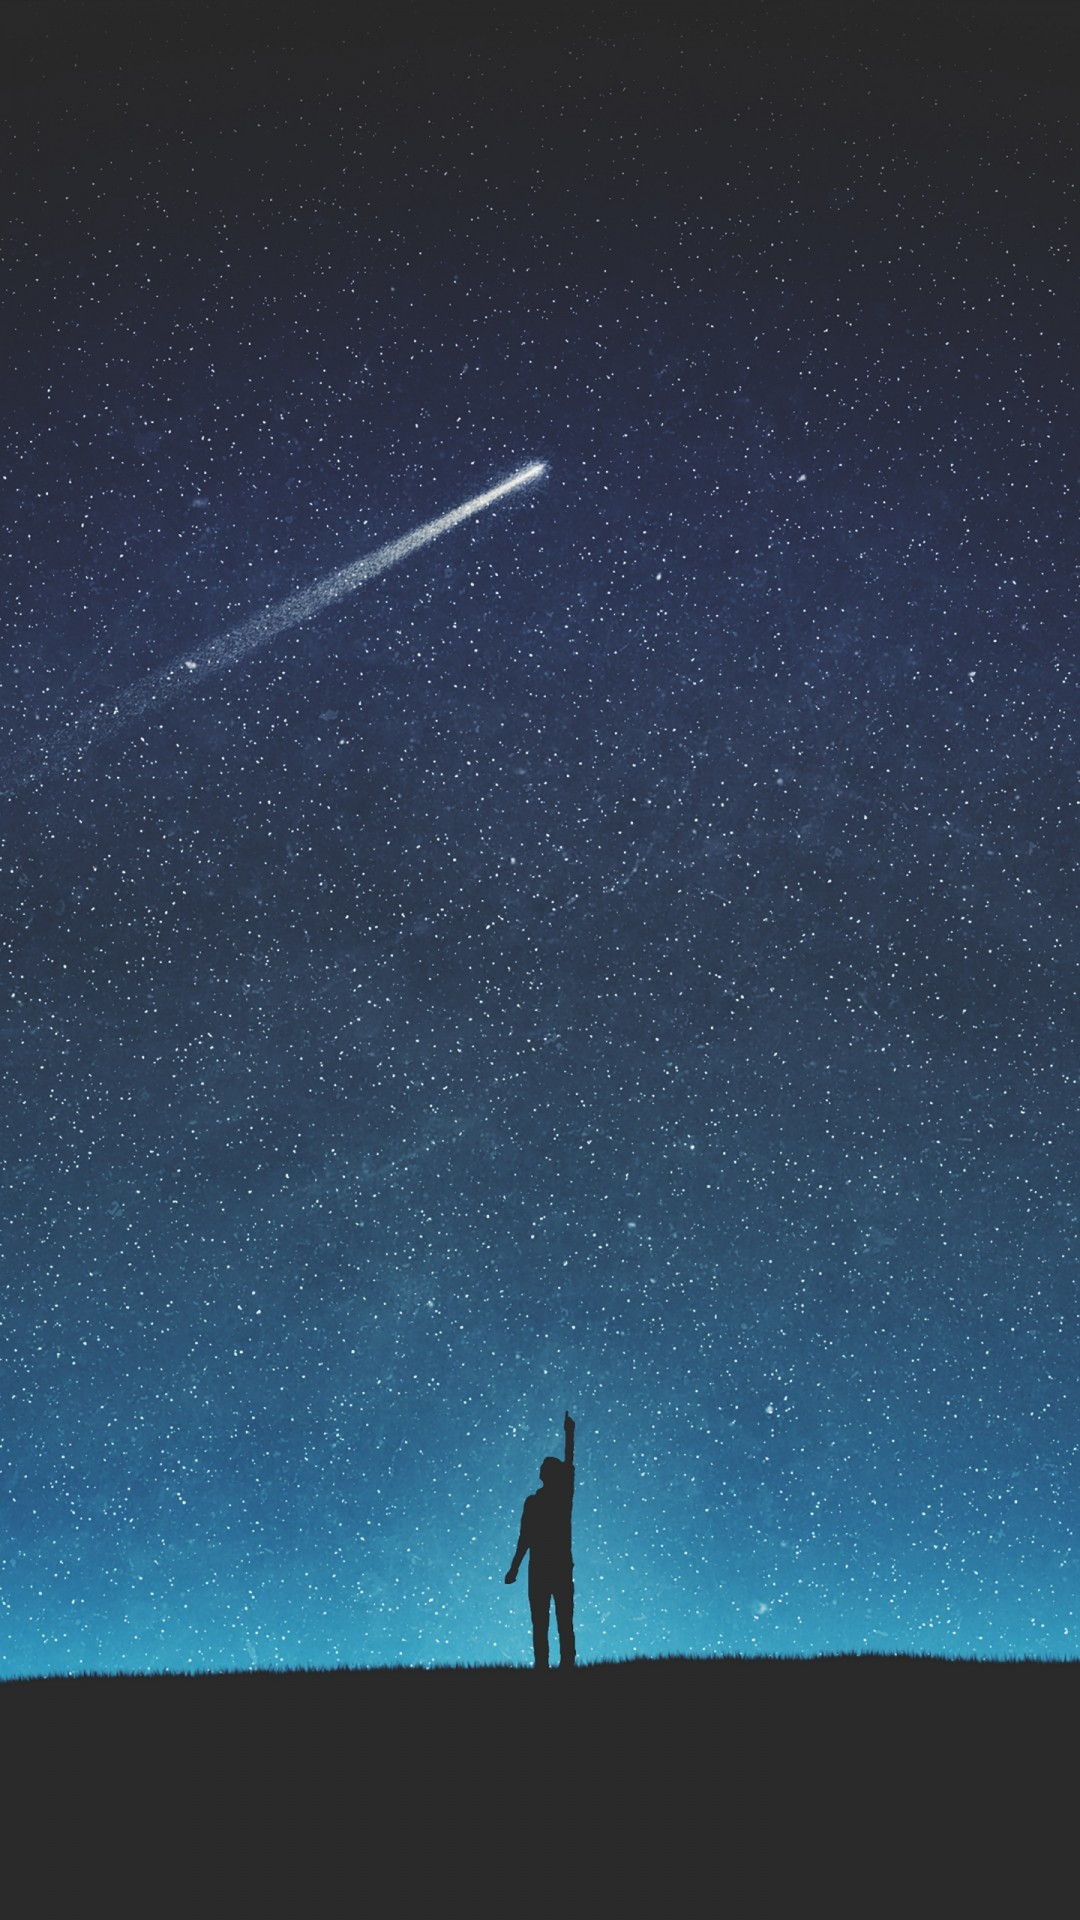 Free Shooting Star Silhouette phone wallpaper by mommyhoney